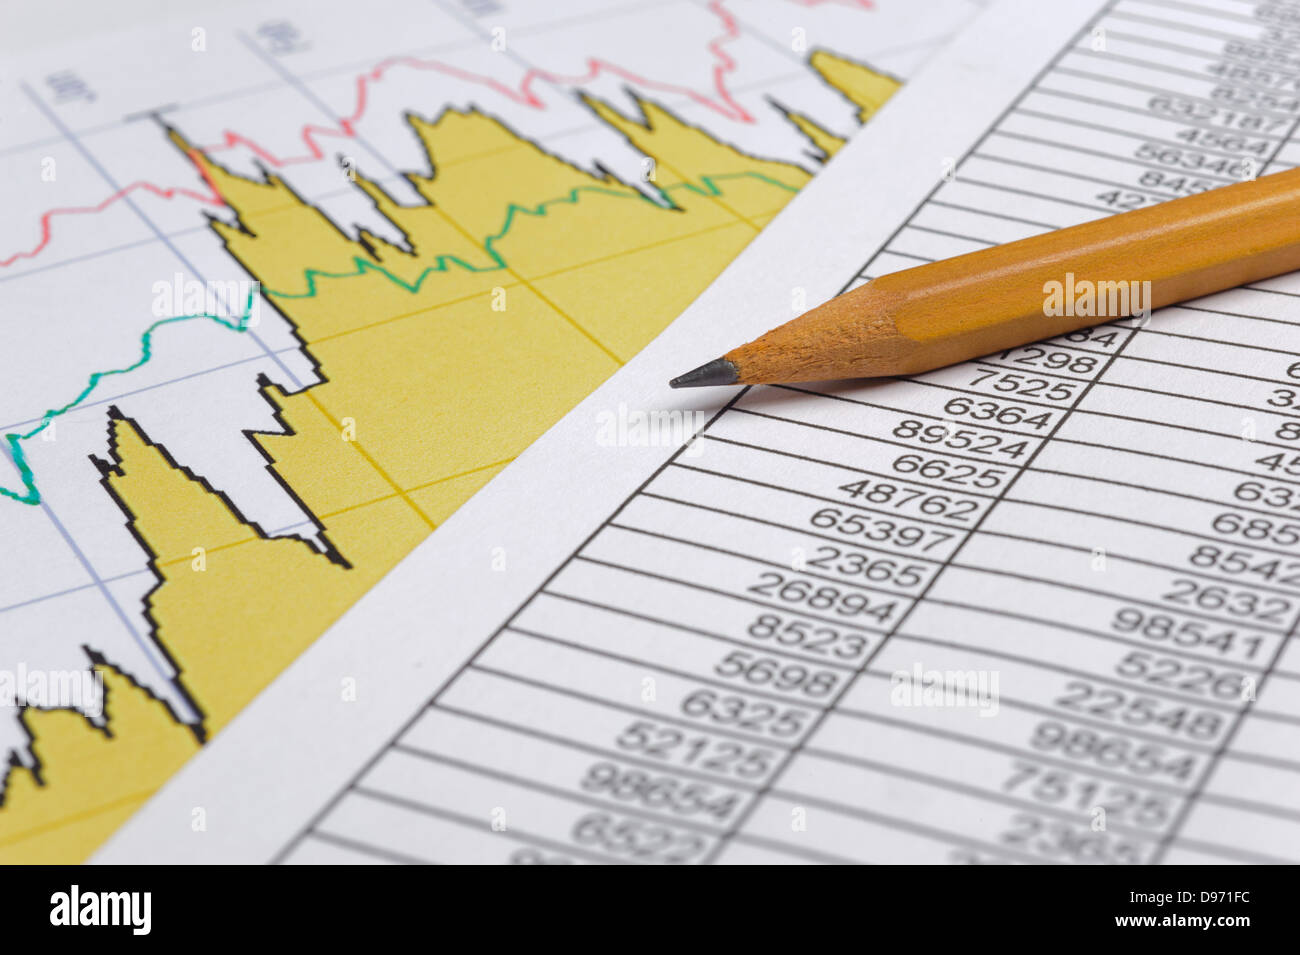 finance business calculation with pencil on chart Stock Photo